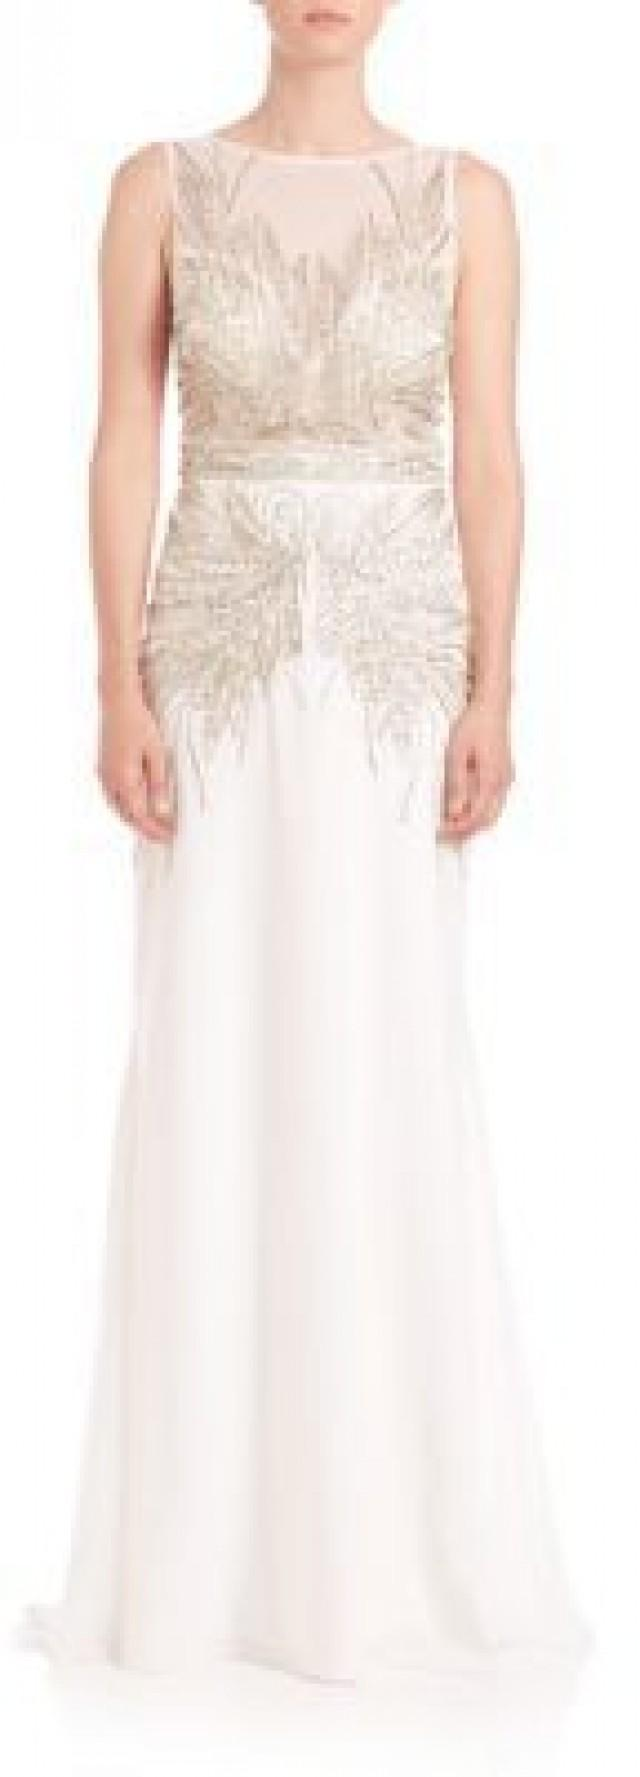 Sue wong beaded illusion gown 2447241 weddbook for Sue wong robes de mariage